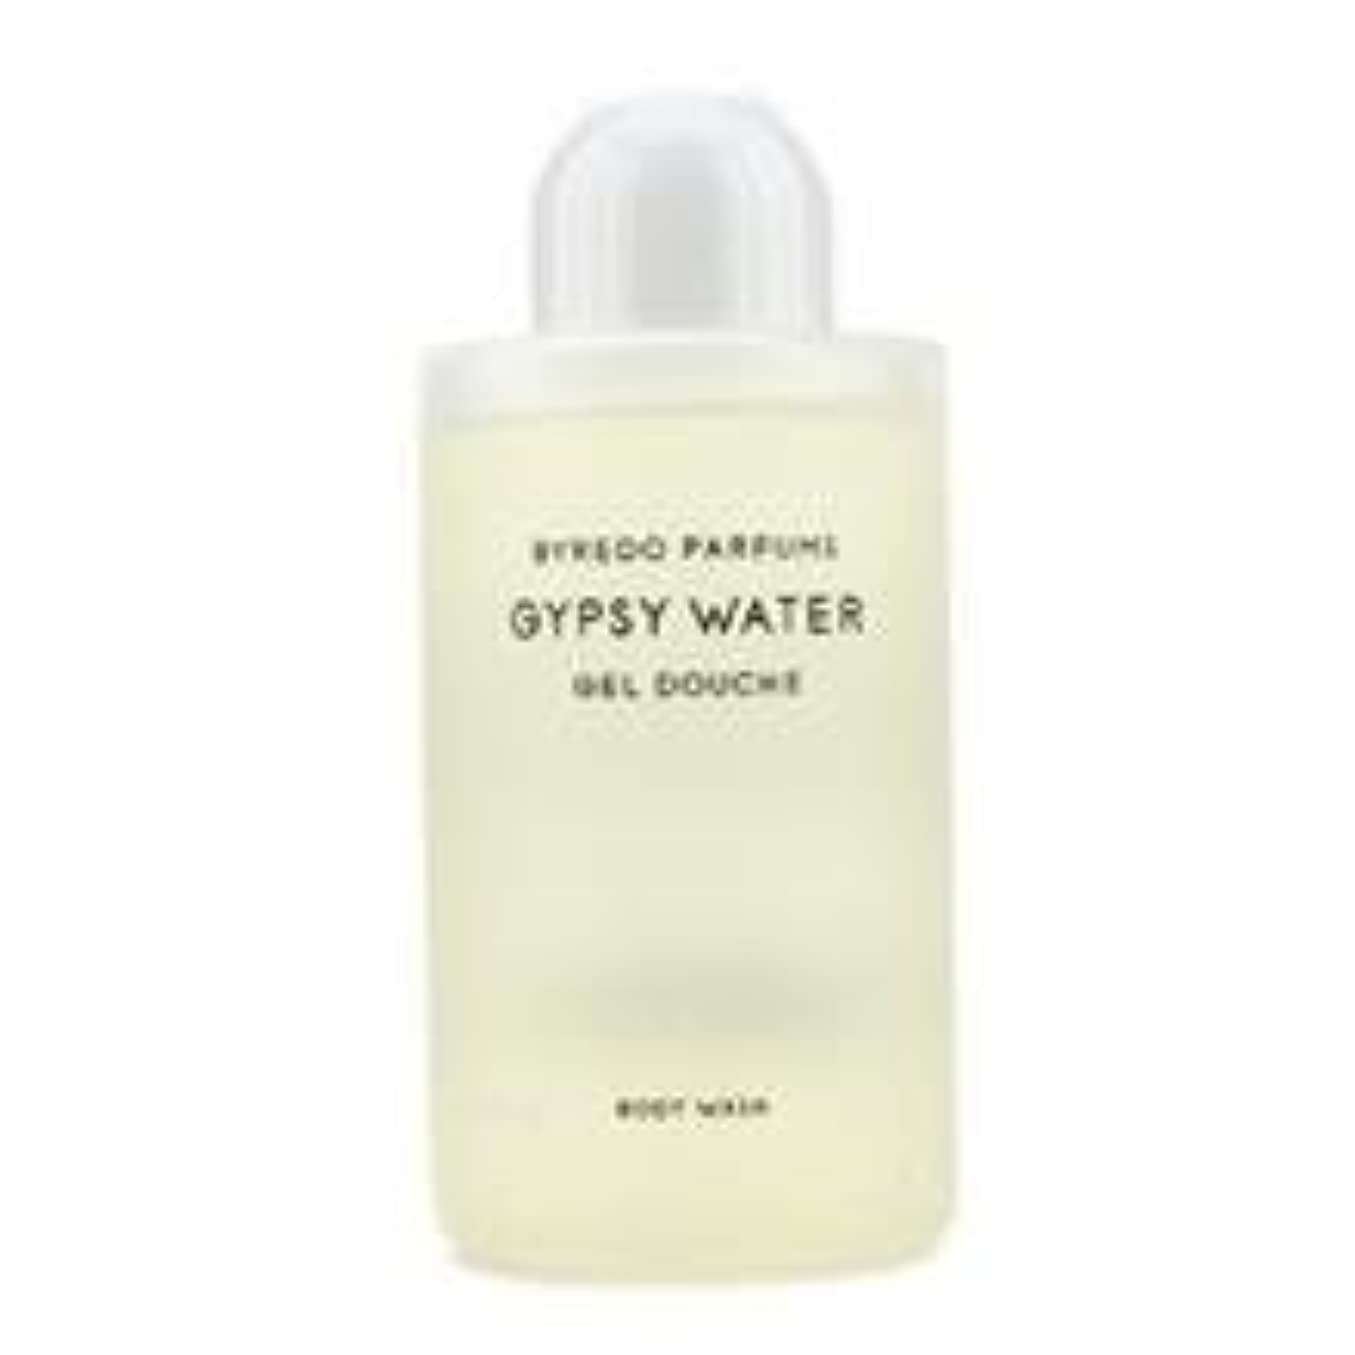 明るい強制マルクス主義者Byredo Gypsy Water Body Wash 225ml/7.6oz by Byredo